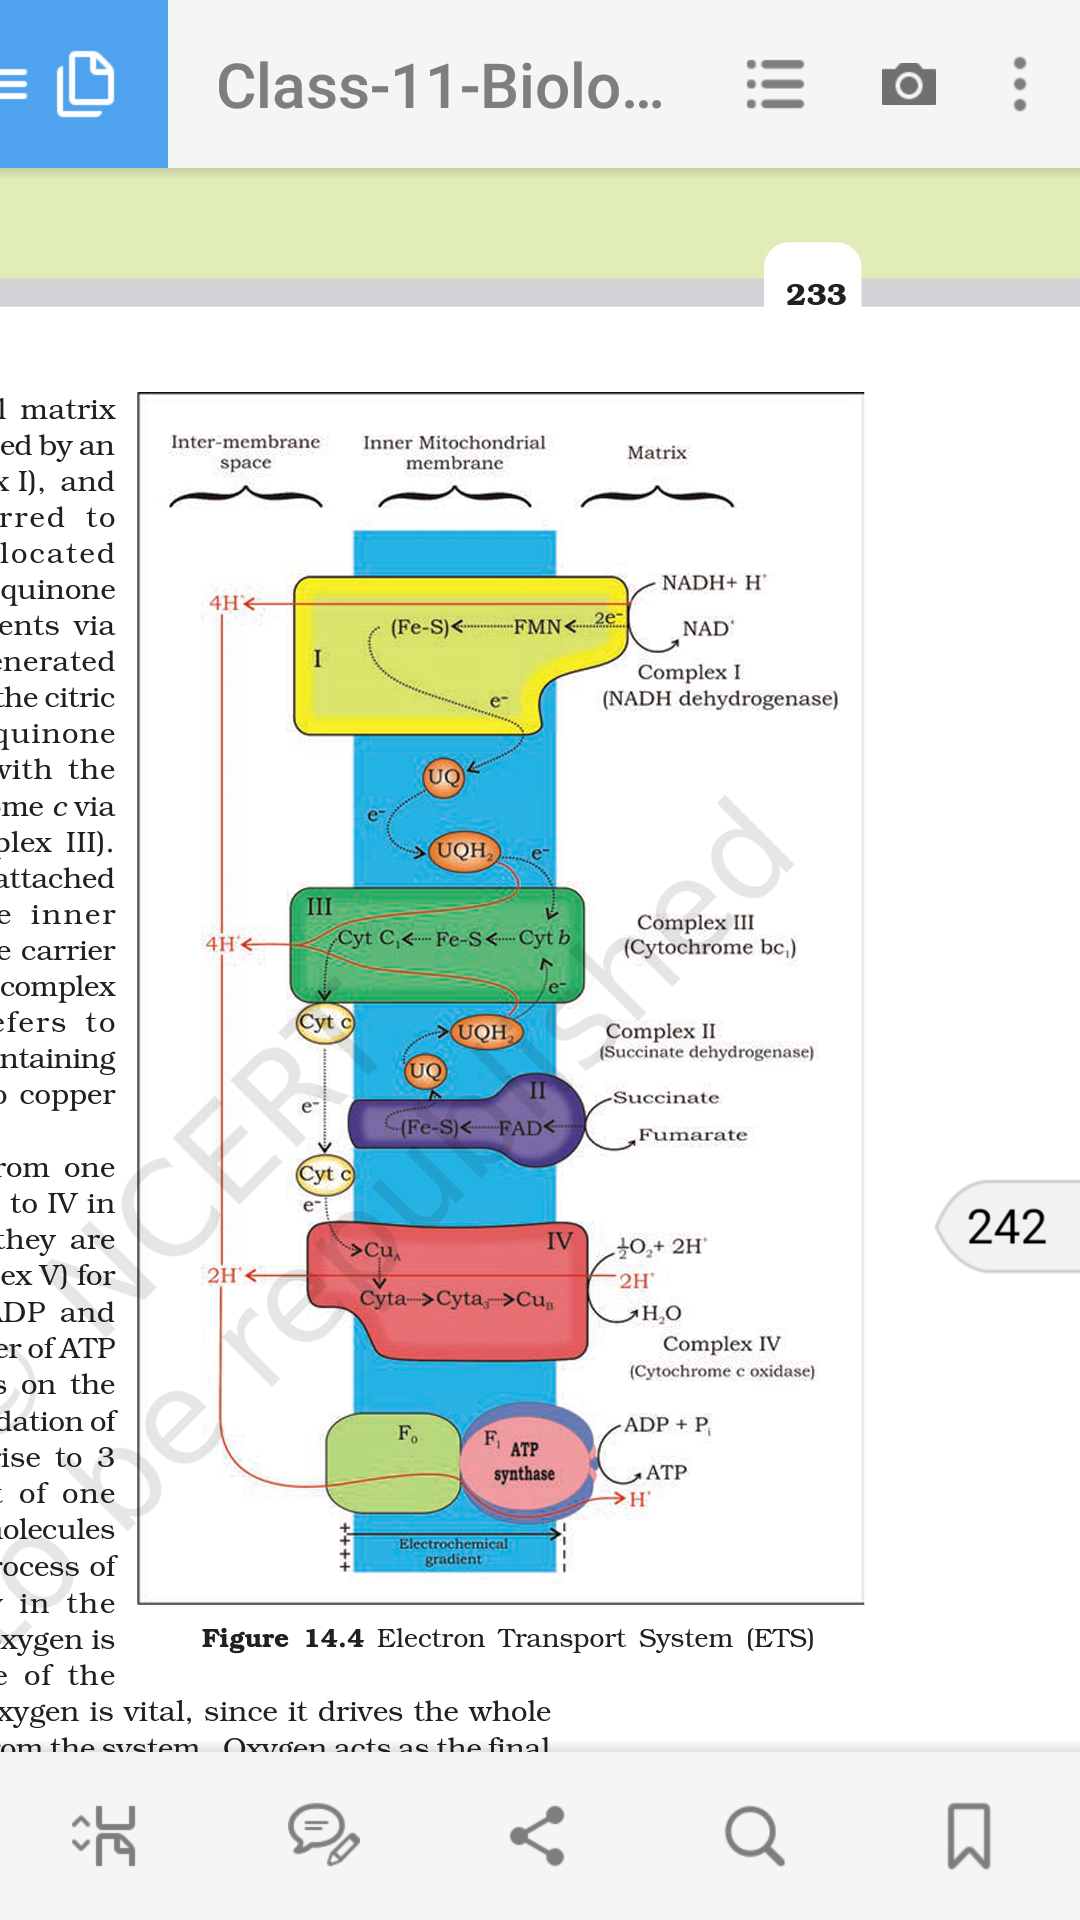 What's new in the latest NCERT 12th class biology book in